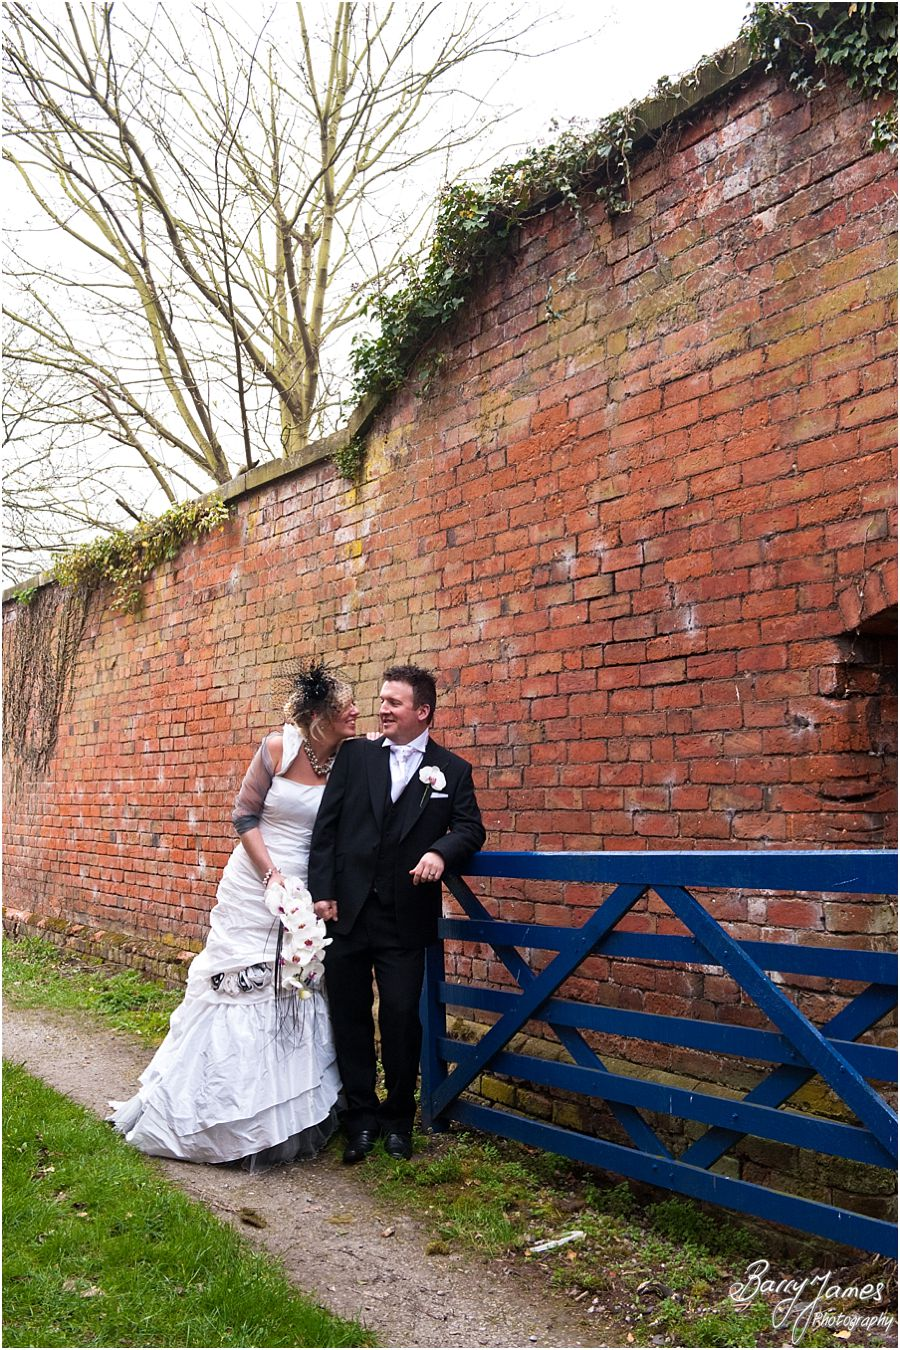 Creative bridal portraits at Somerford Hall in Brewood by Brewood Wedding Photographer Barry James